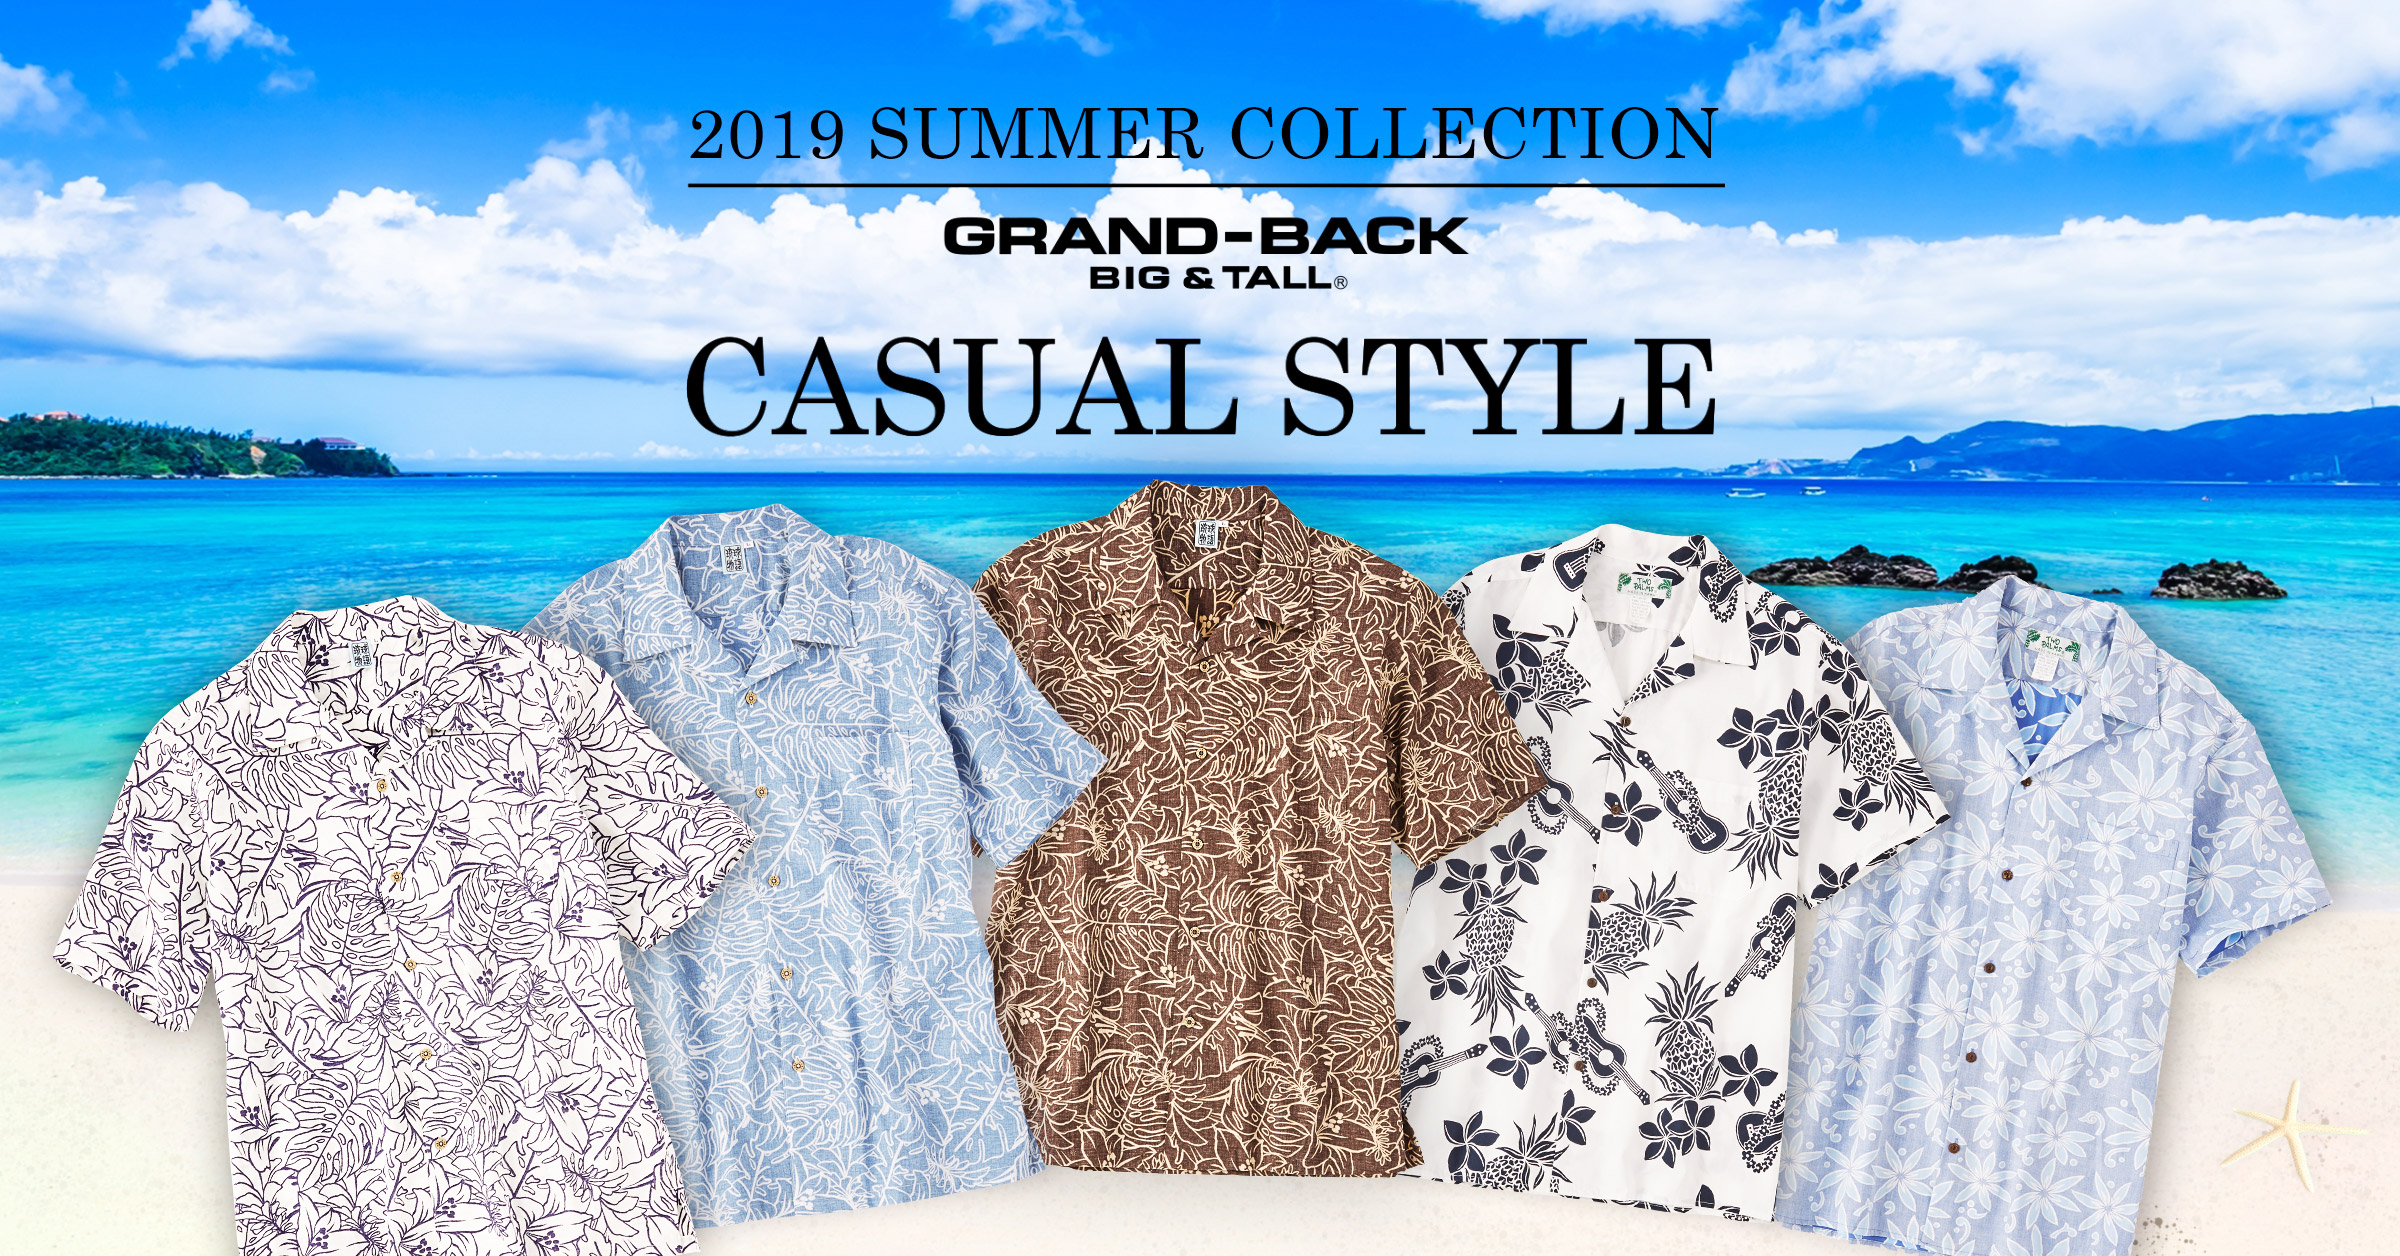 2019 summer casual style